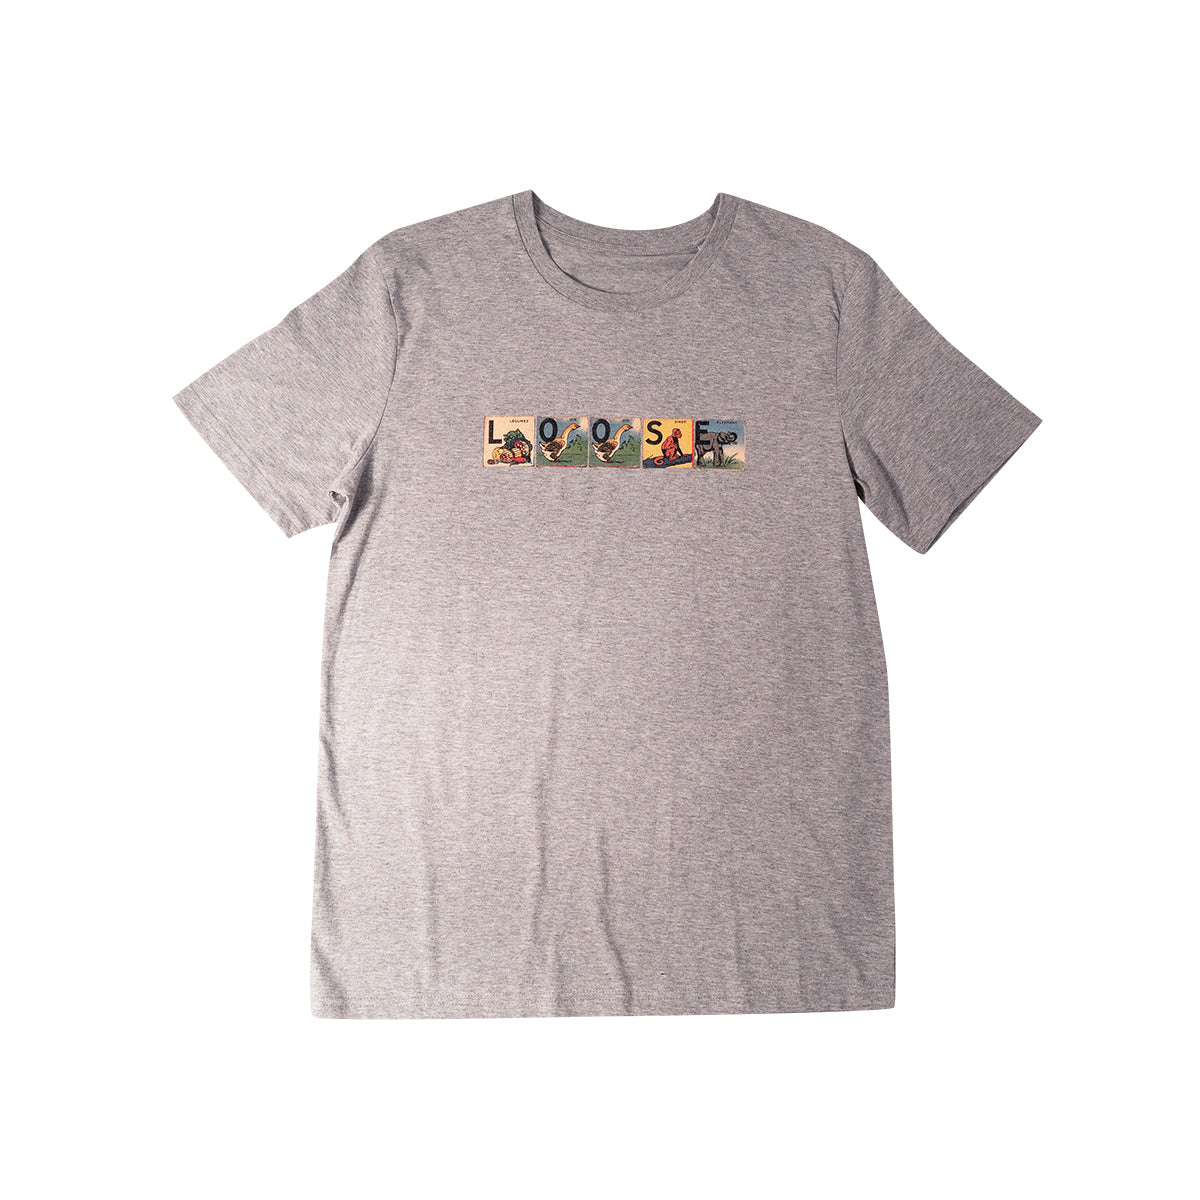 LOOSE - ALPHABET T-SHIRT